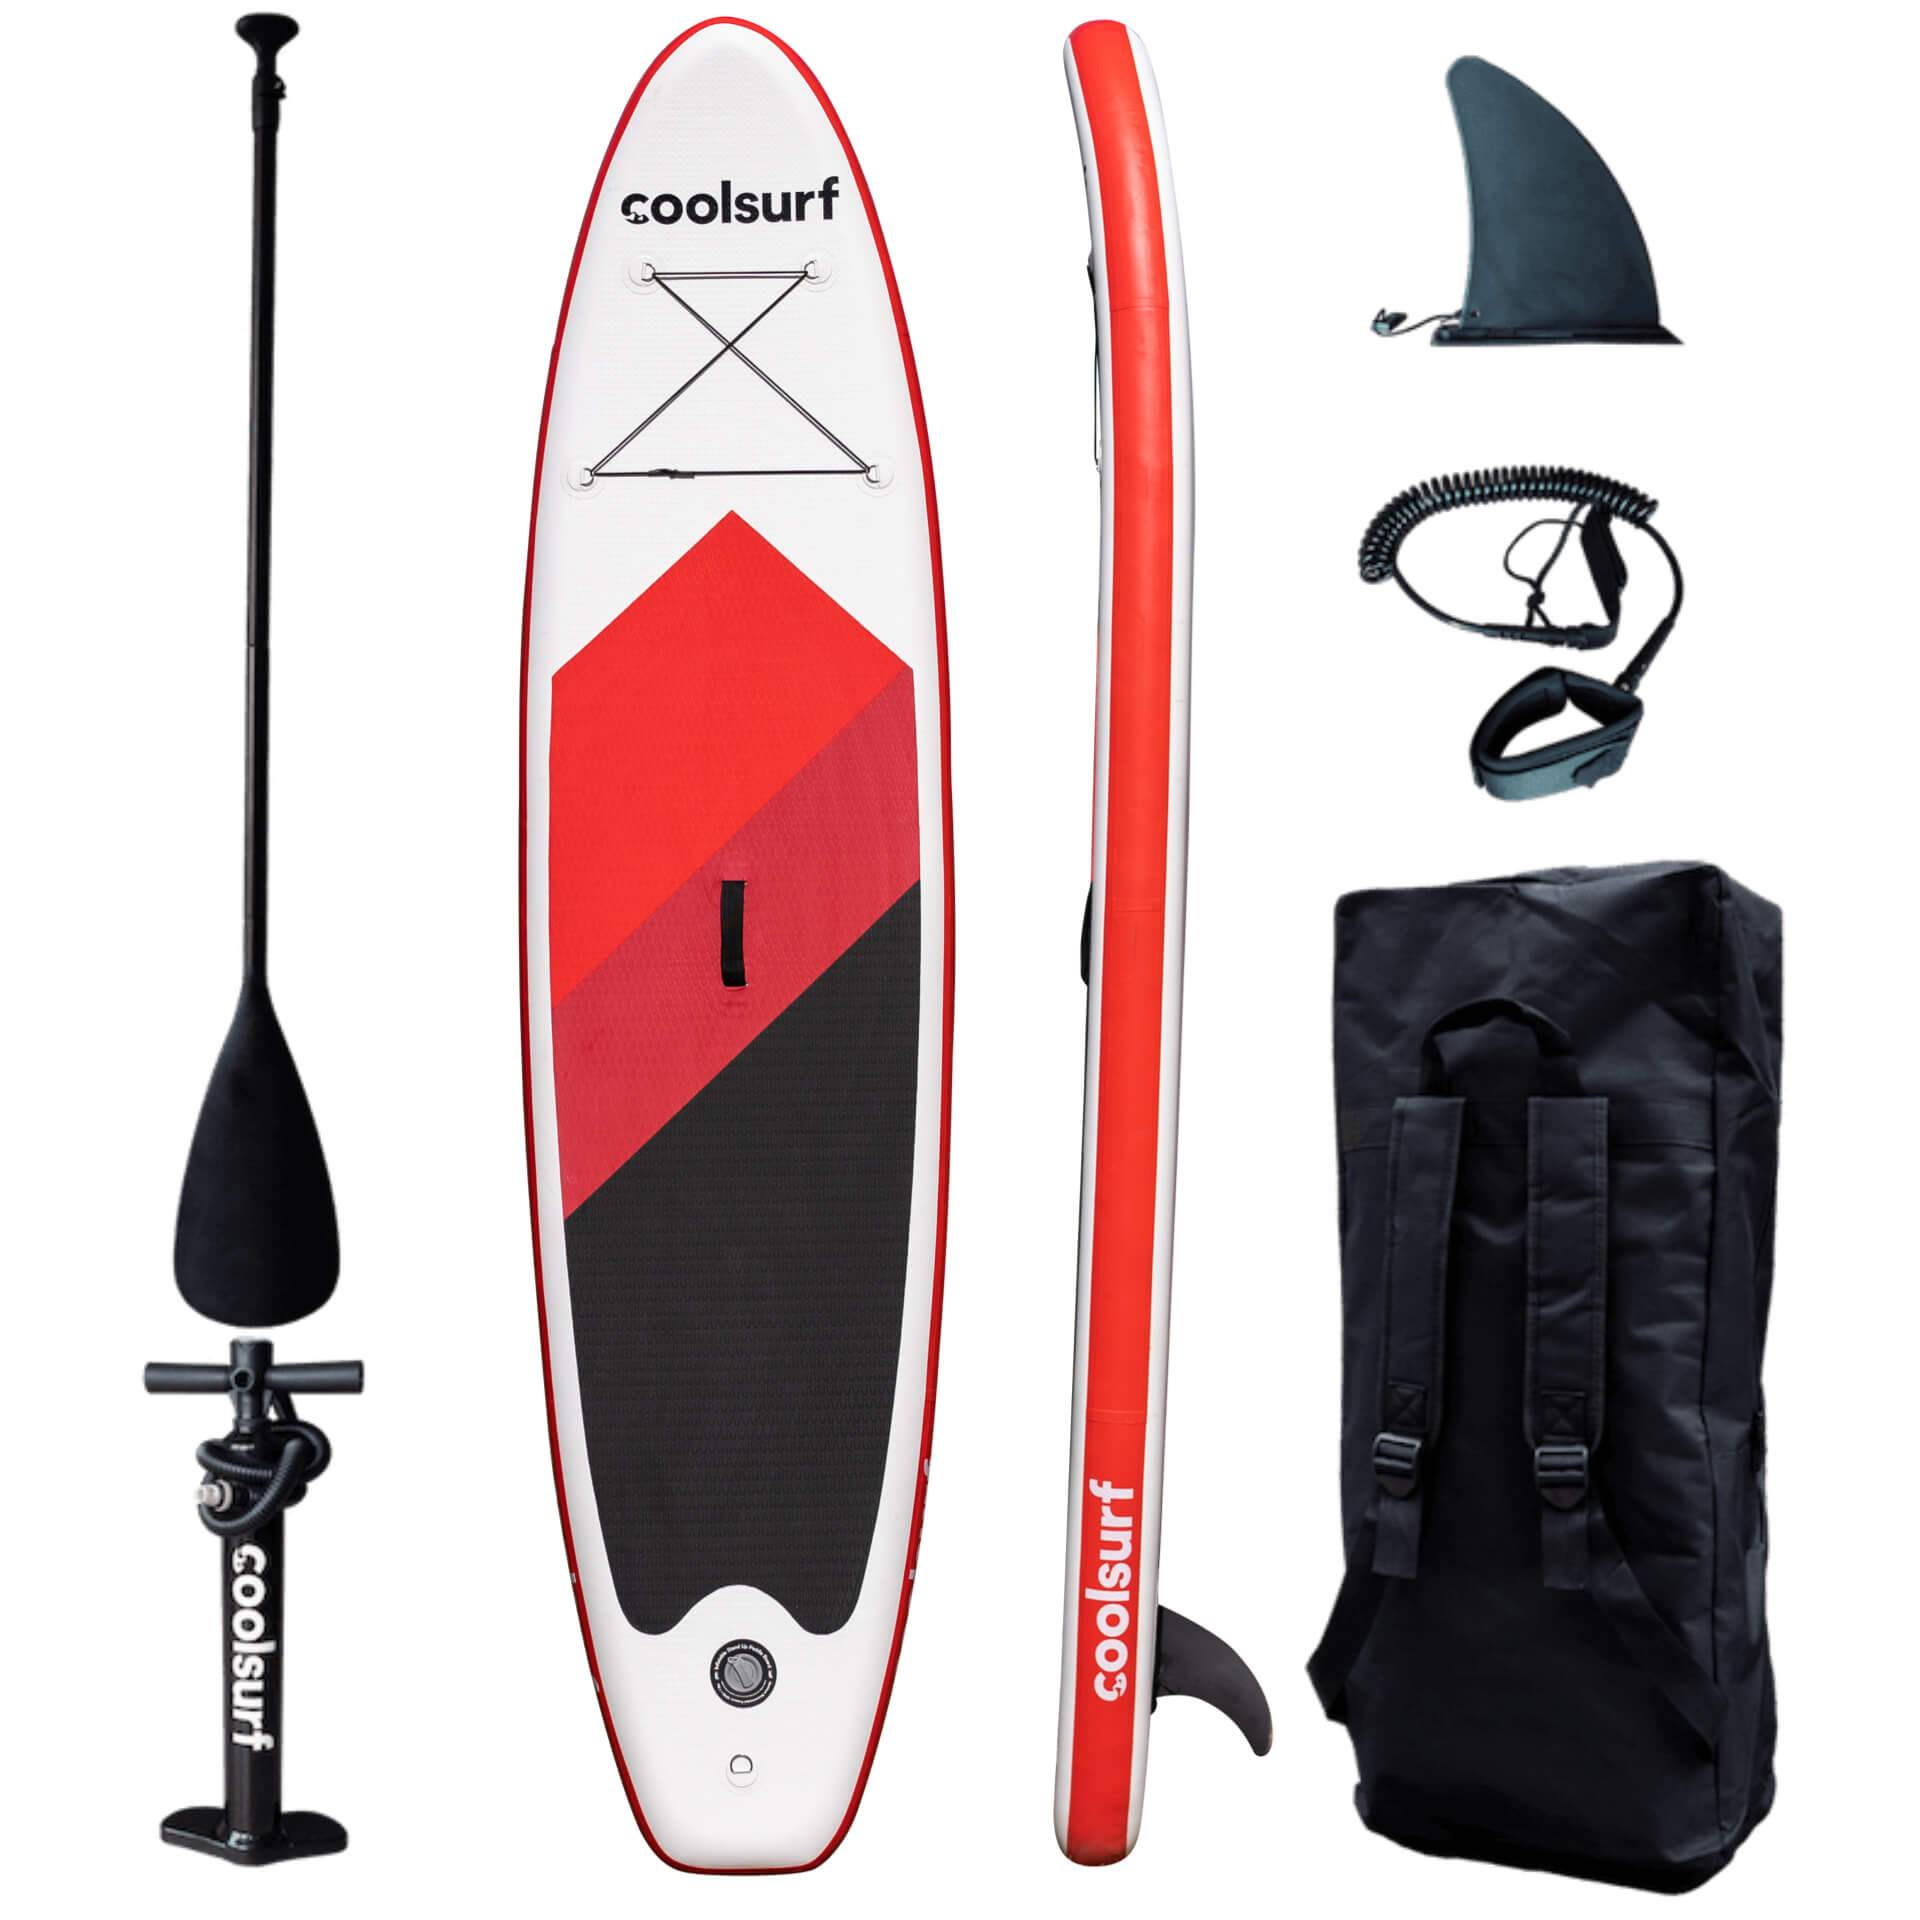 CoolSurf Paddleboard Surfy Kite Red Edition - SUP gonfiabile 3,2M